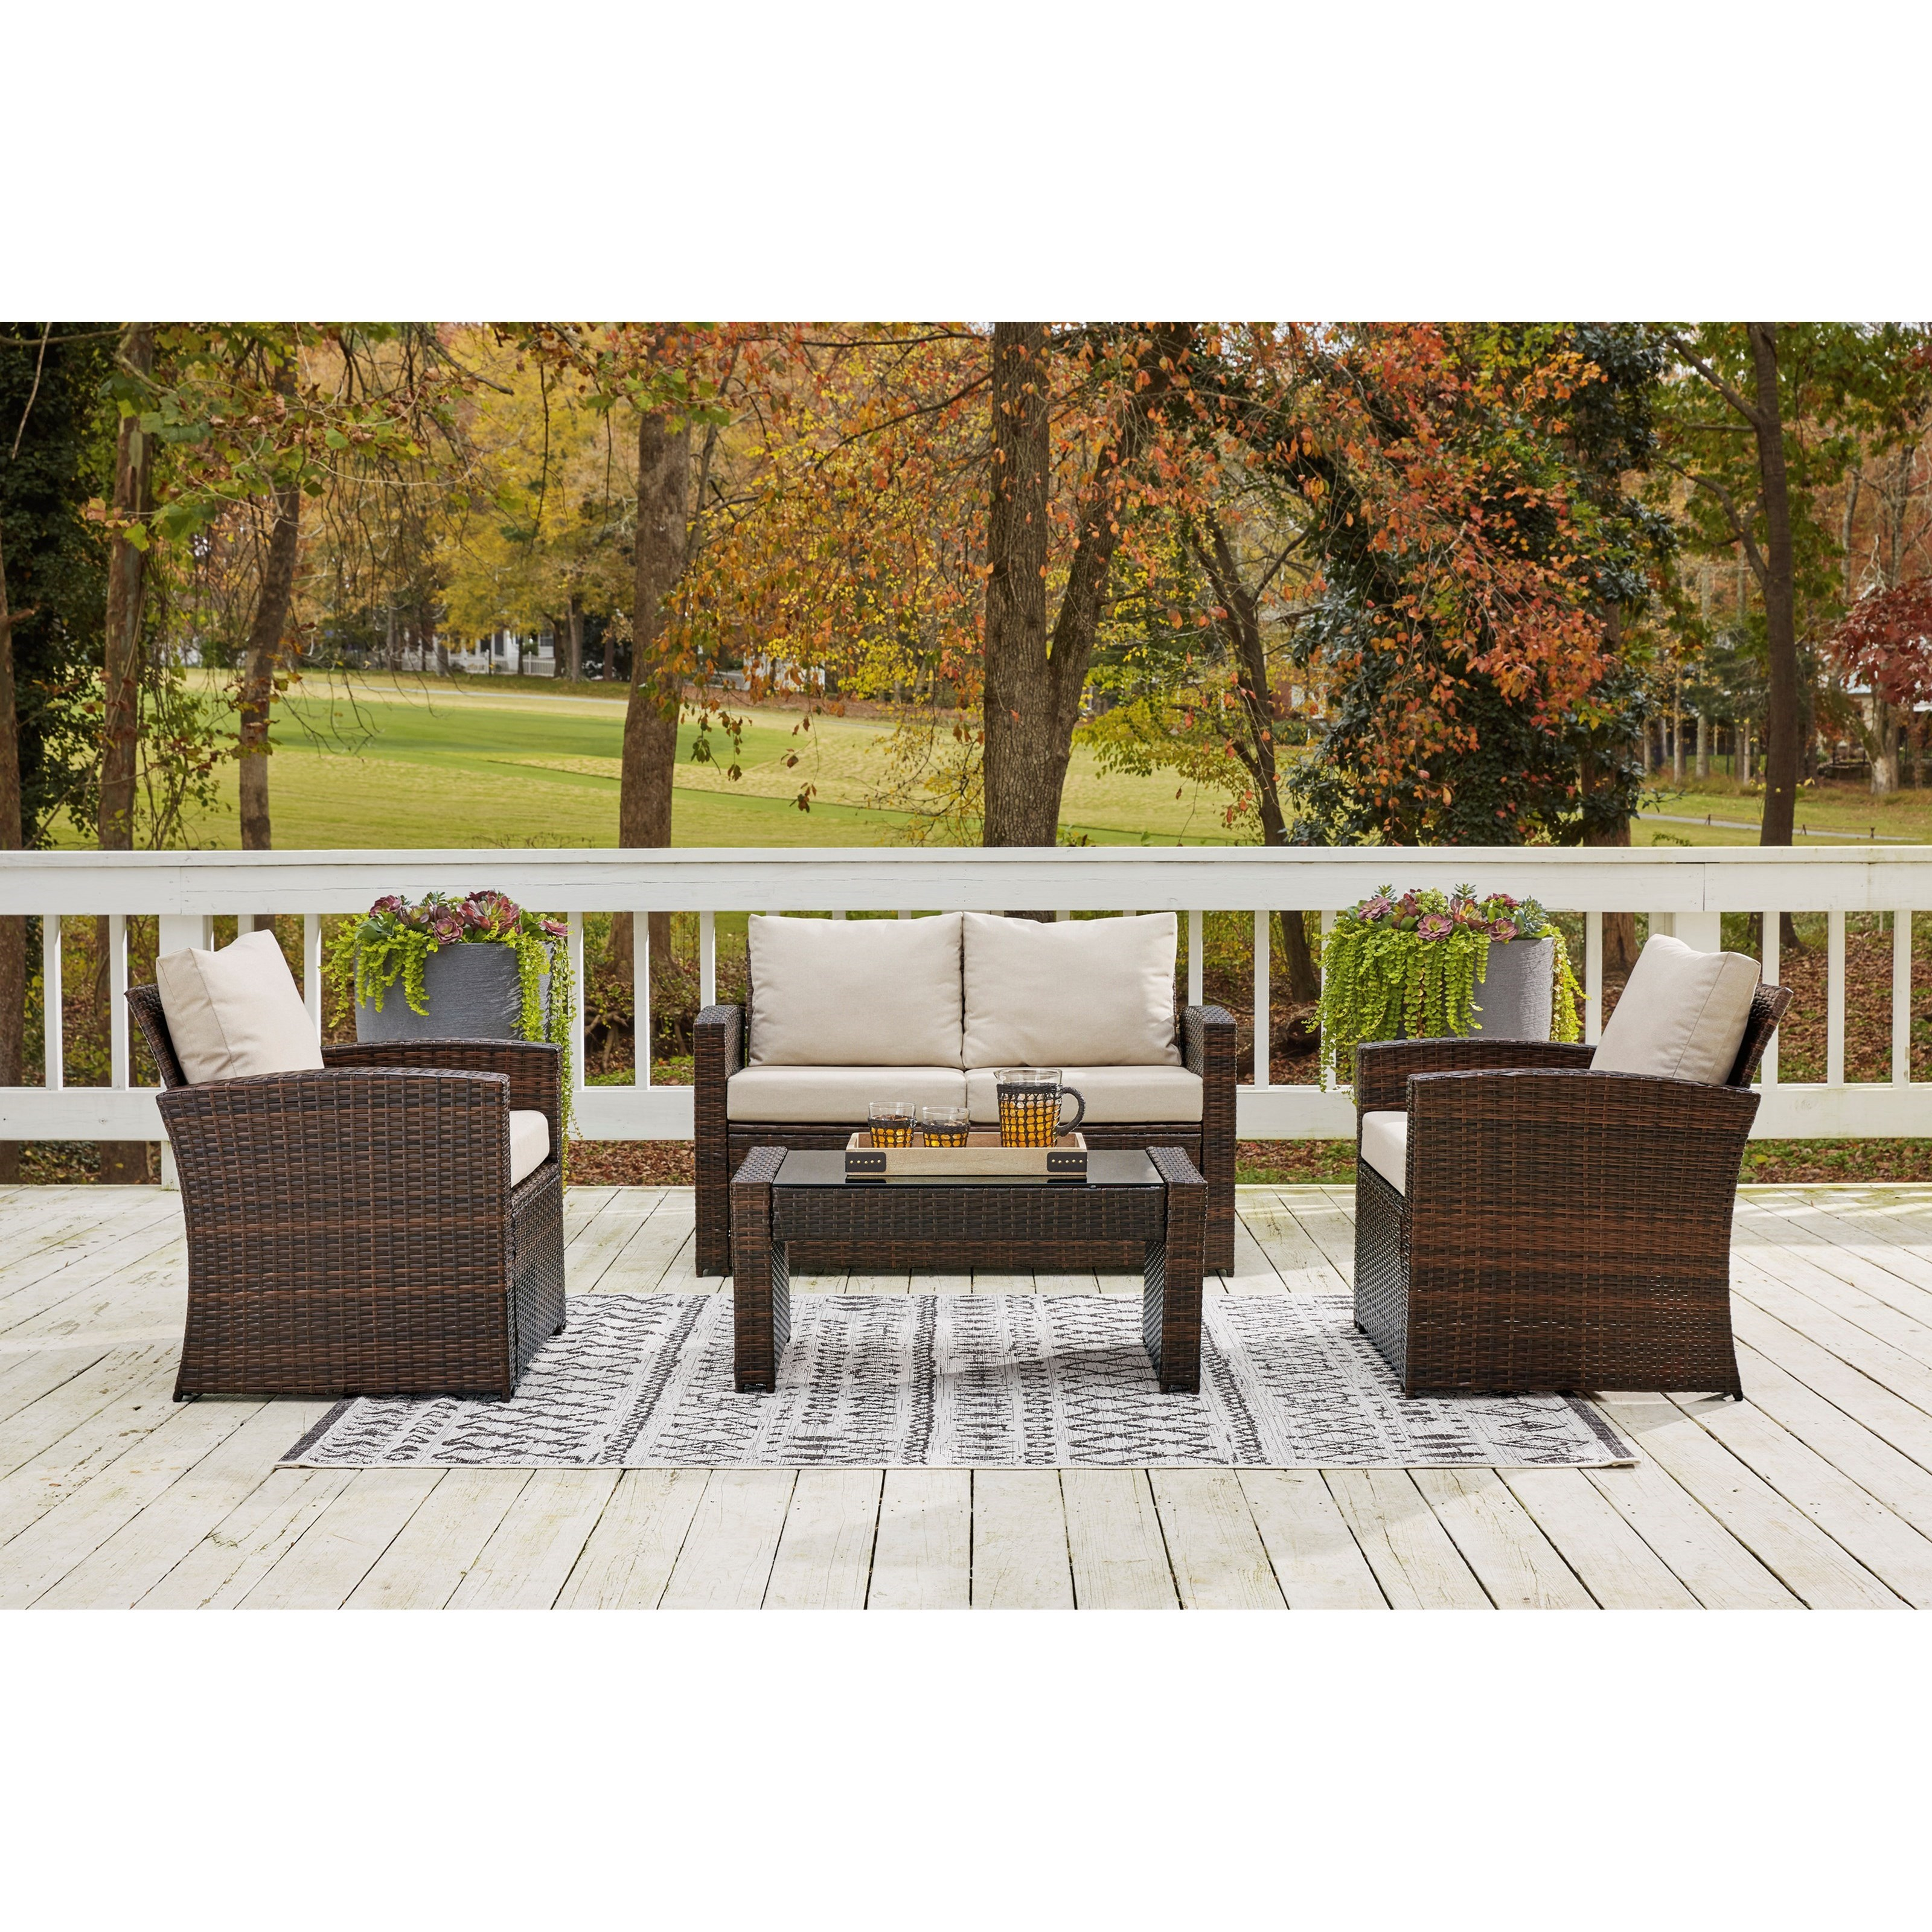 East Brook Loveseat w/ Table & 2 Lounge Chairs by Signature at Walker's Furniture